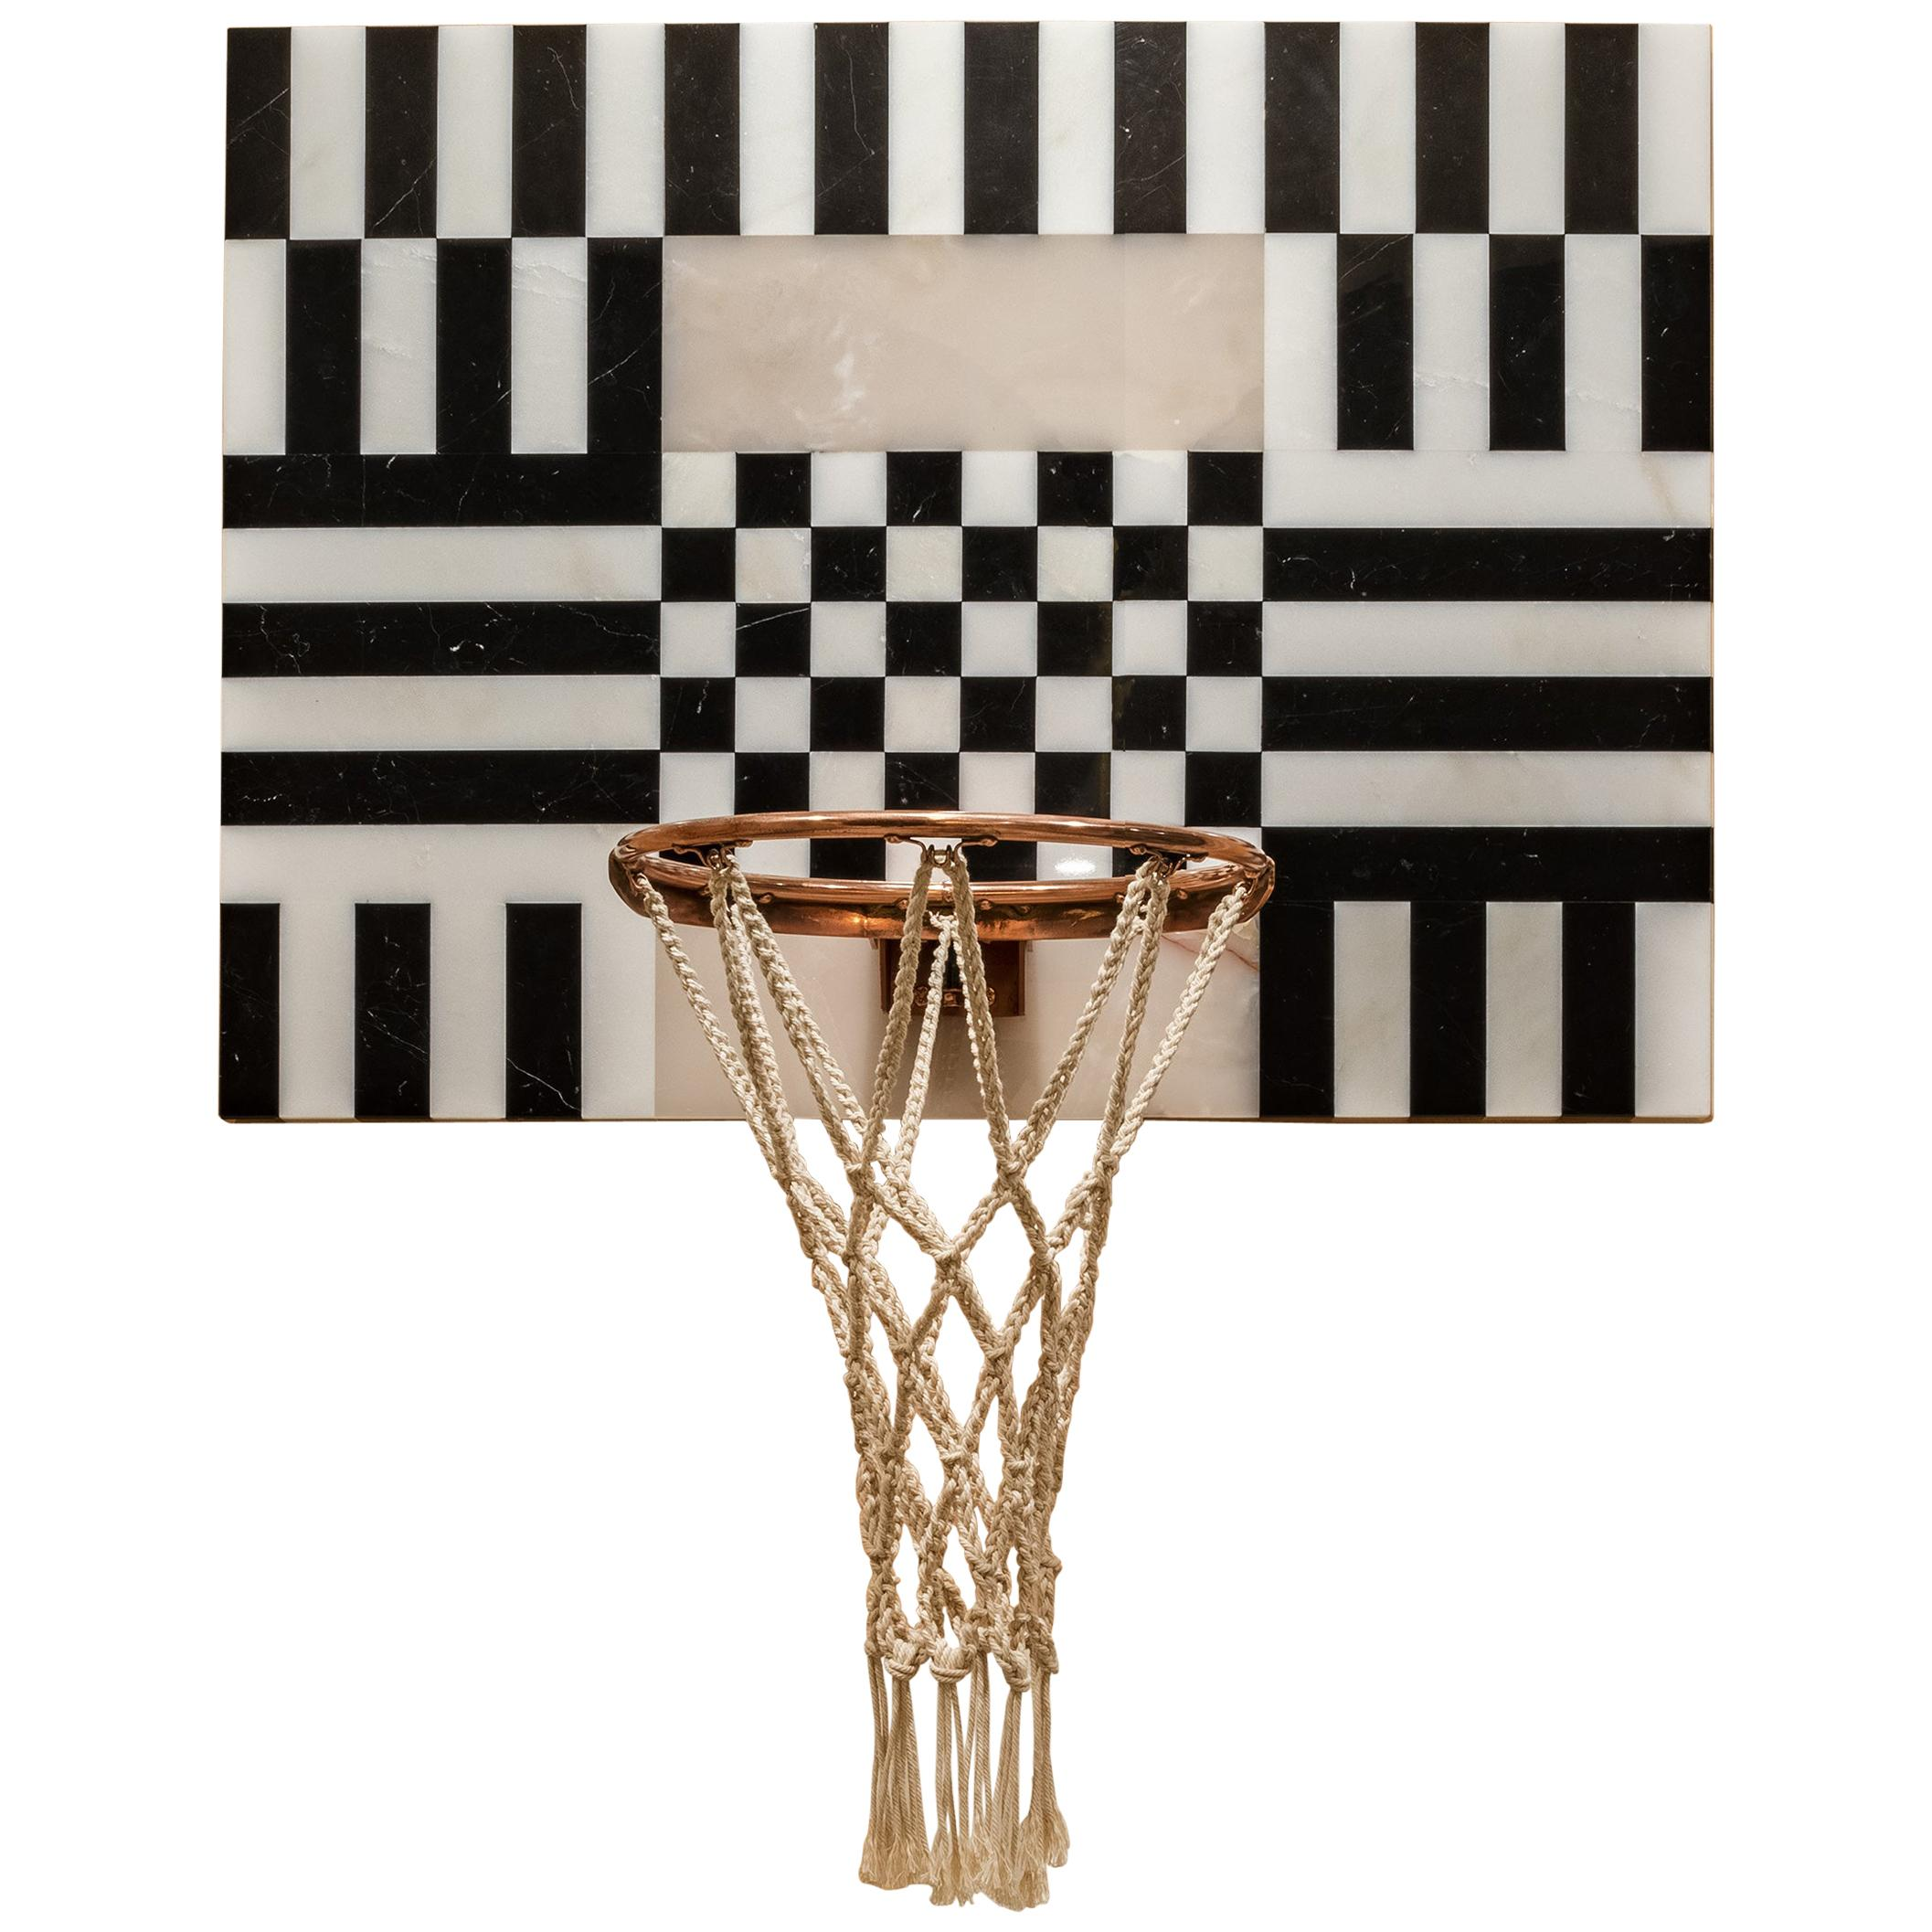 Lux Mini Hoops by Moniomi, Square Hand-Crafted Marble Basketball Hoop